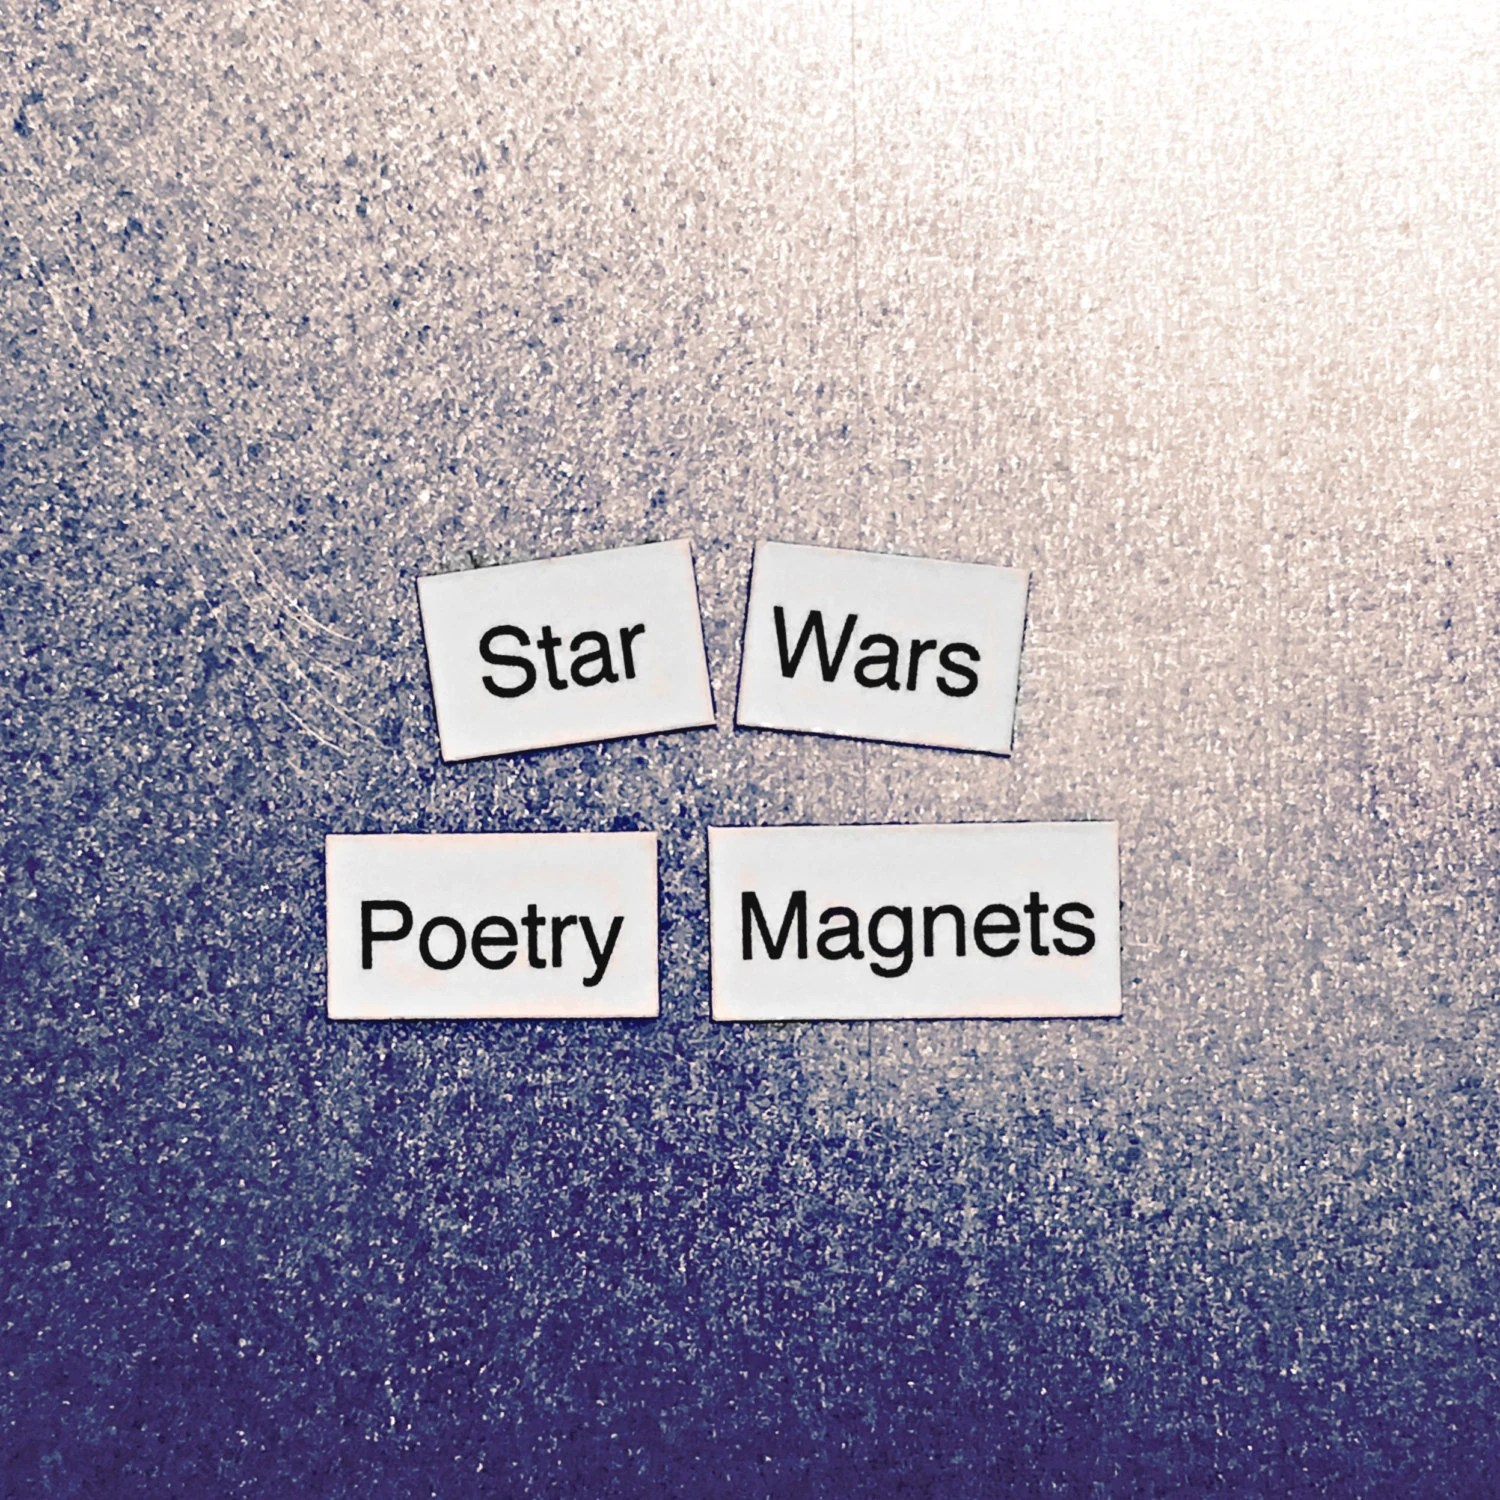 Star Wars Refrigerator Magnets Poetry Word Magnets Free T